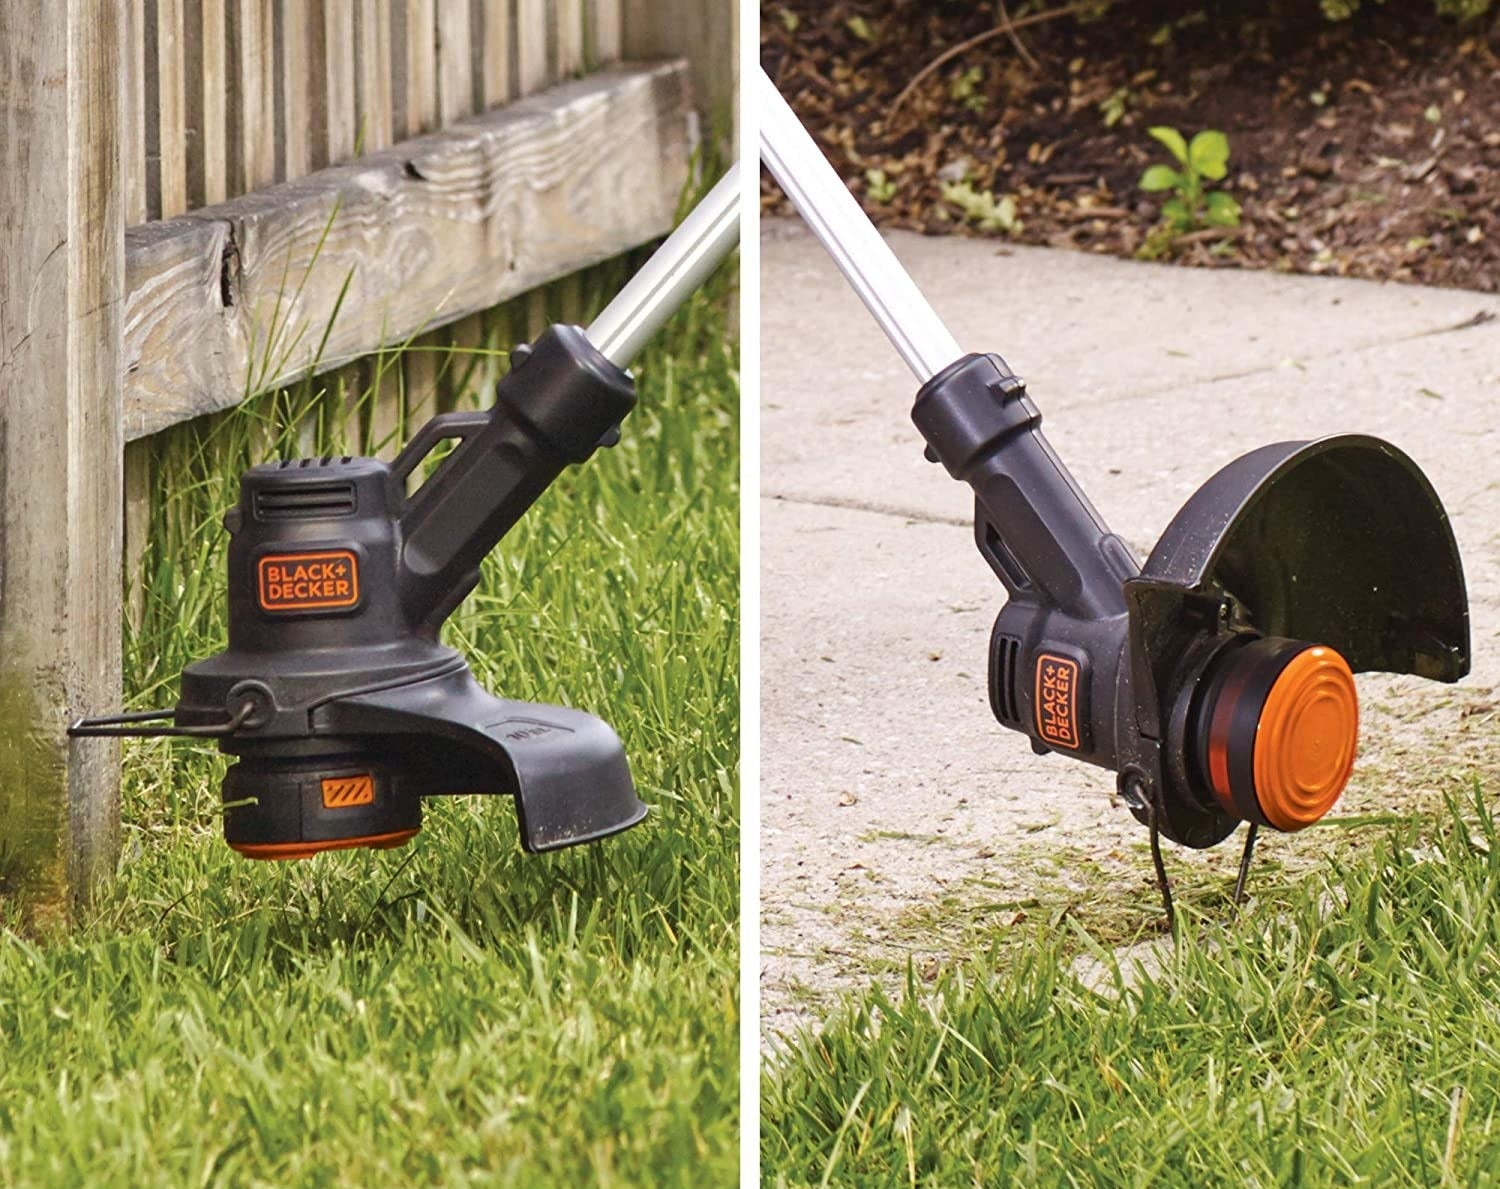 the trimmer used as a trimmer and an edger for grass